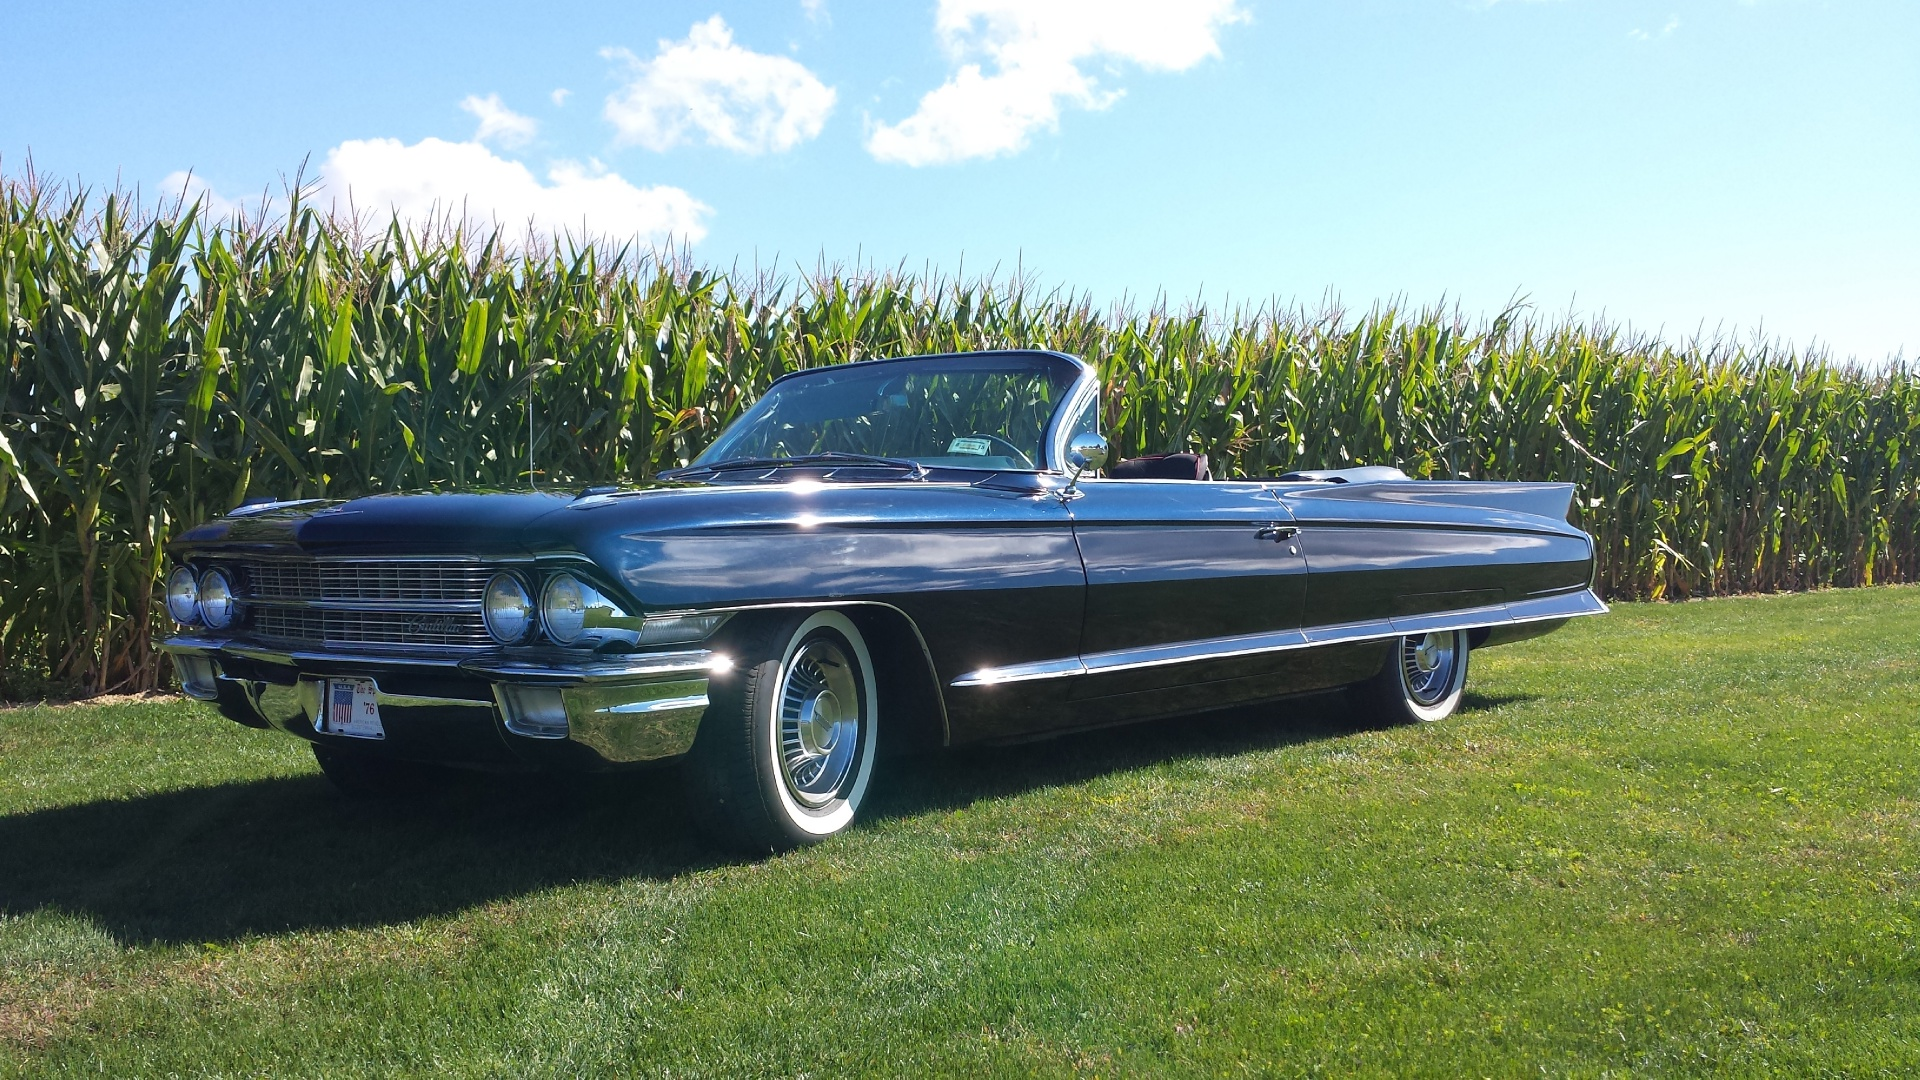 1962 Cadillac 62 Series Stock # CADILLACCONVERT for sale ...